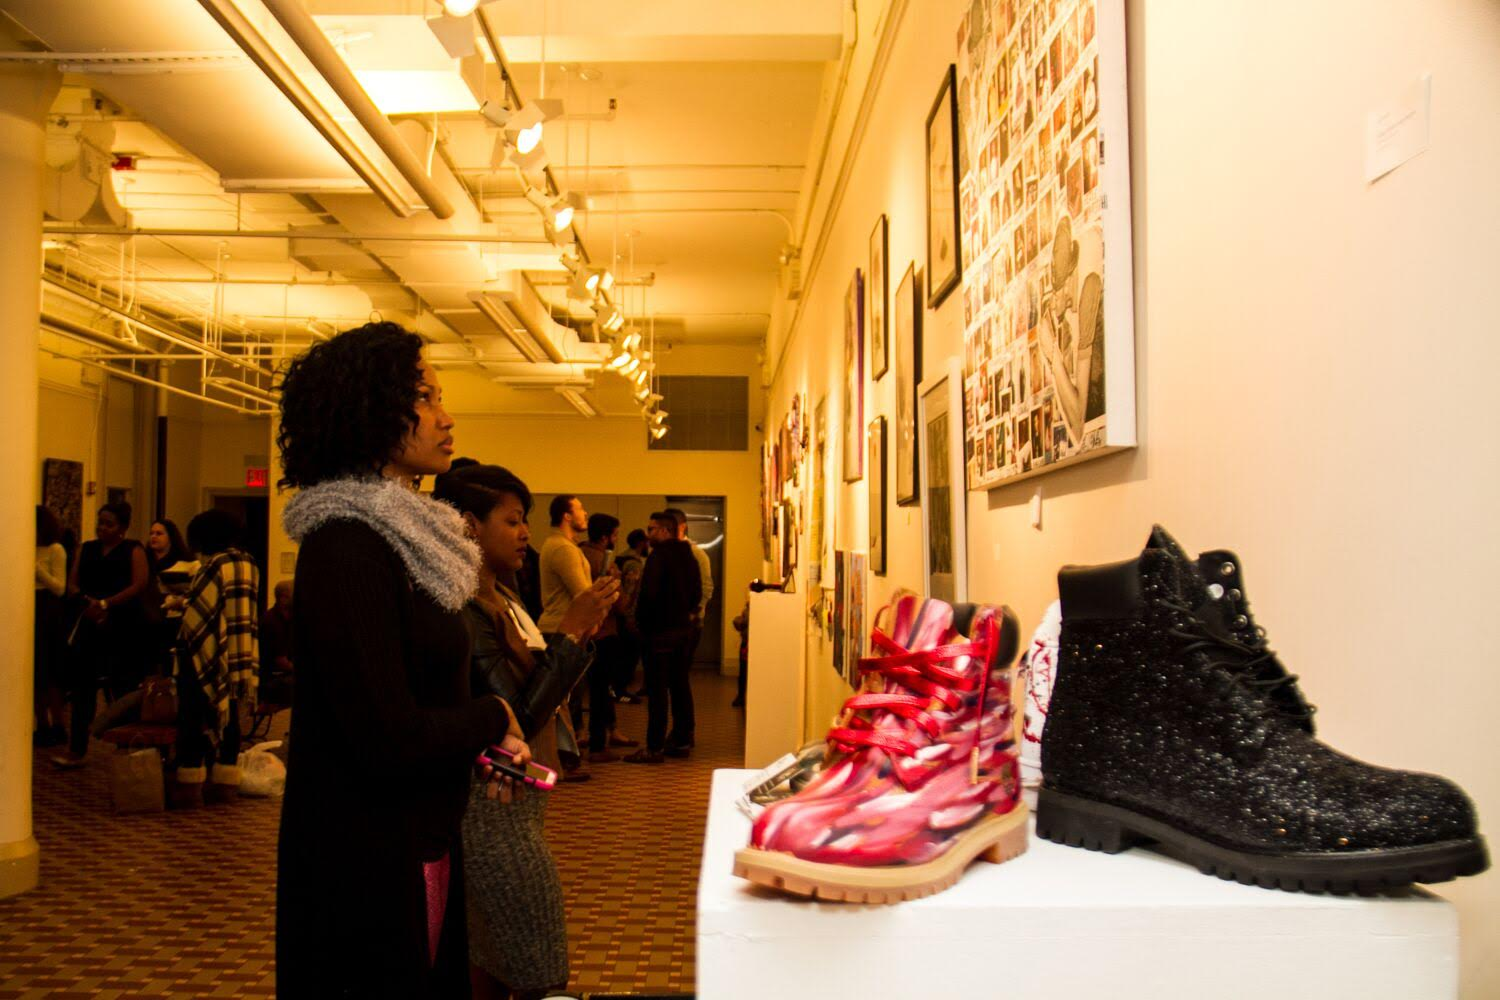 One Brooklyn Artist Who Spreads Love One Timberland At A Time